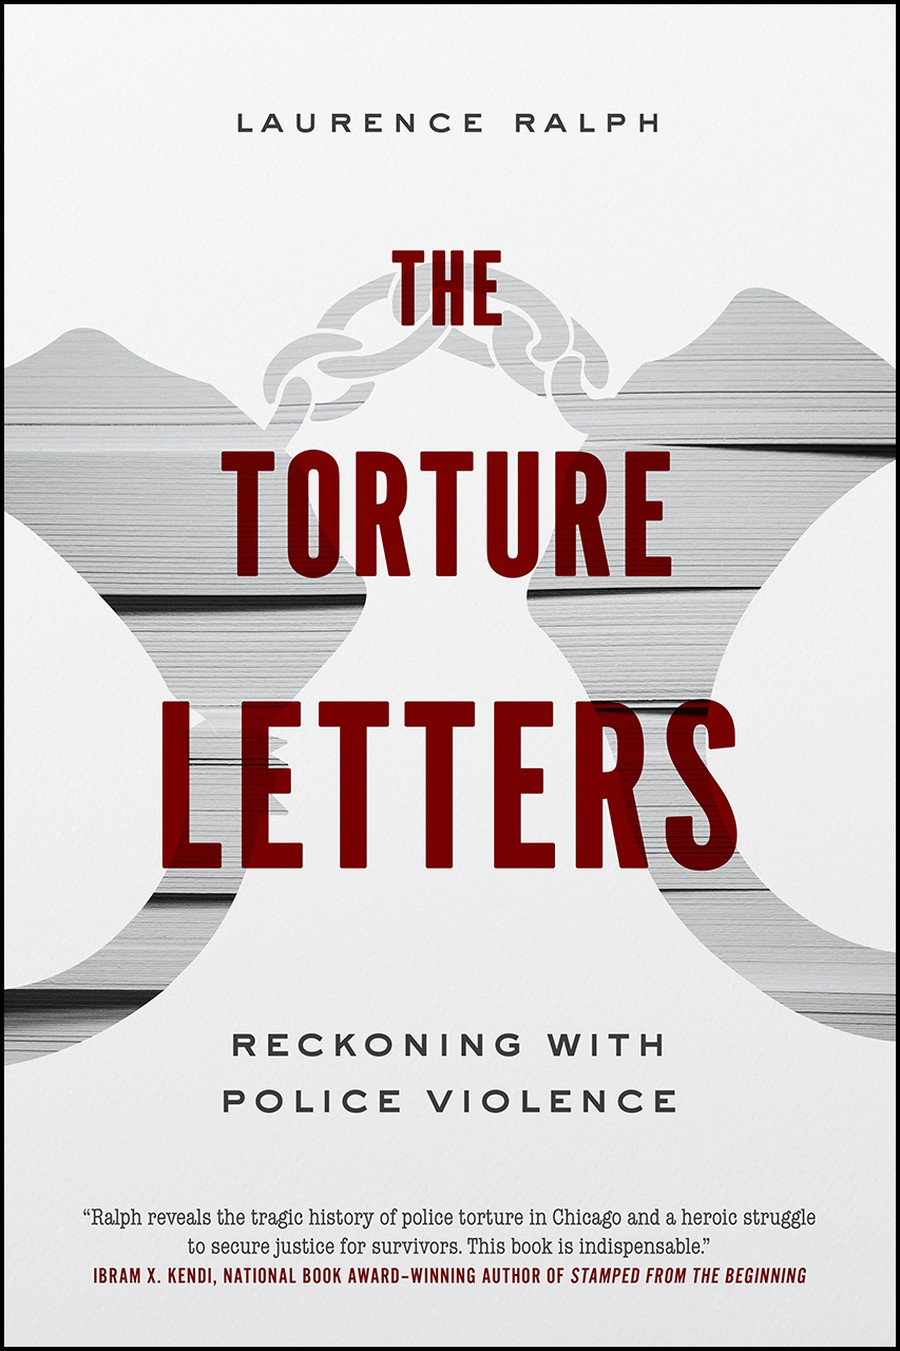 Laurence Ralph's book The Torture Letters examines the history of police violence in Chicago.